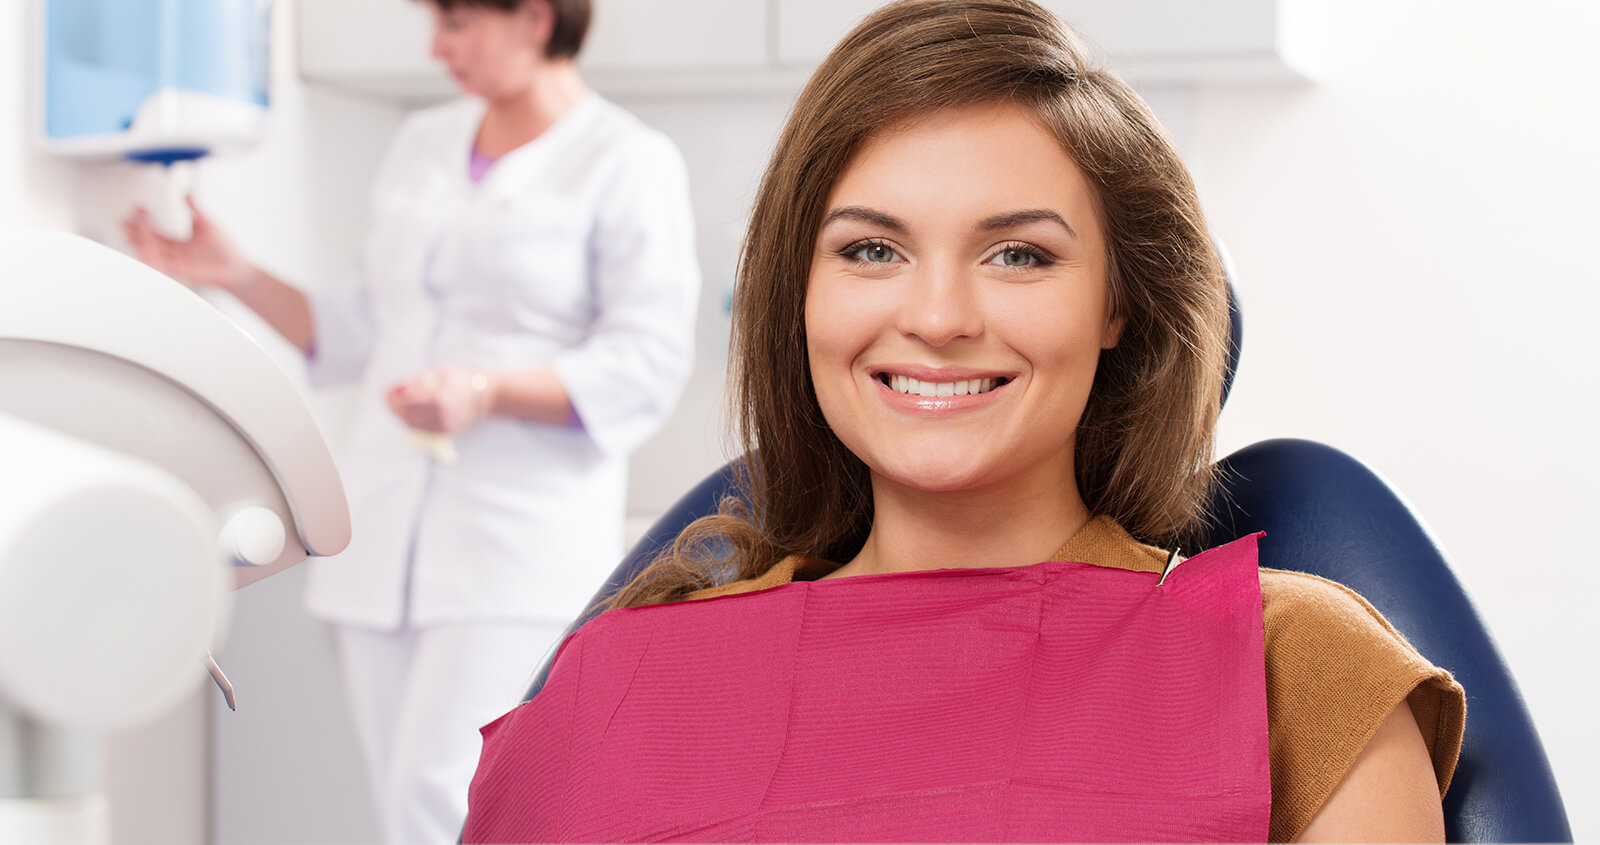 At Milford Dental Care in Highland, MI, patients are finding safe and effective dentistry for life